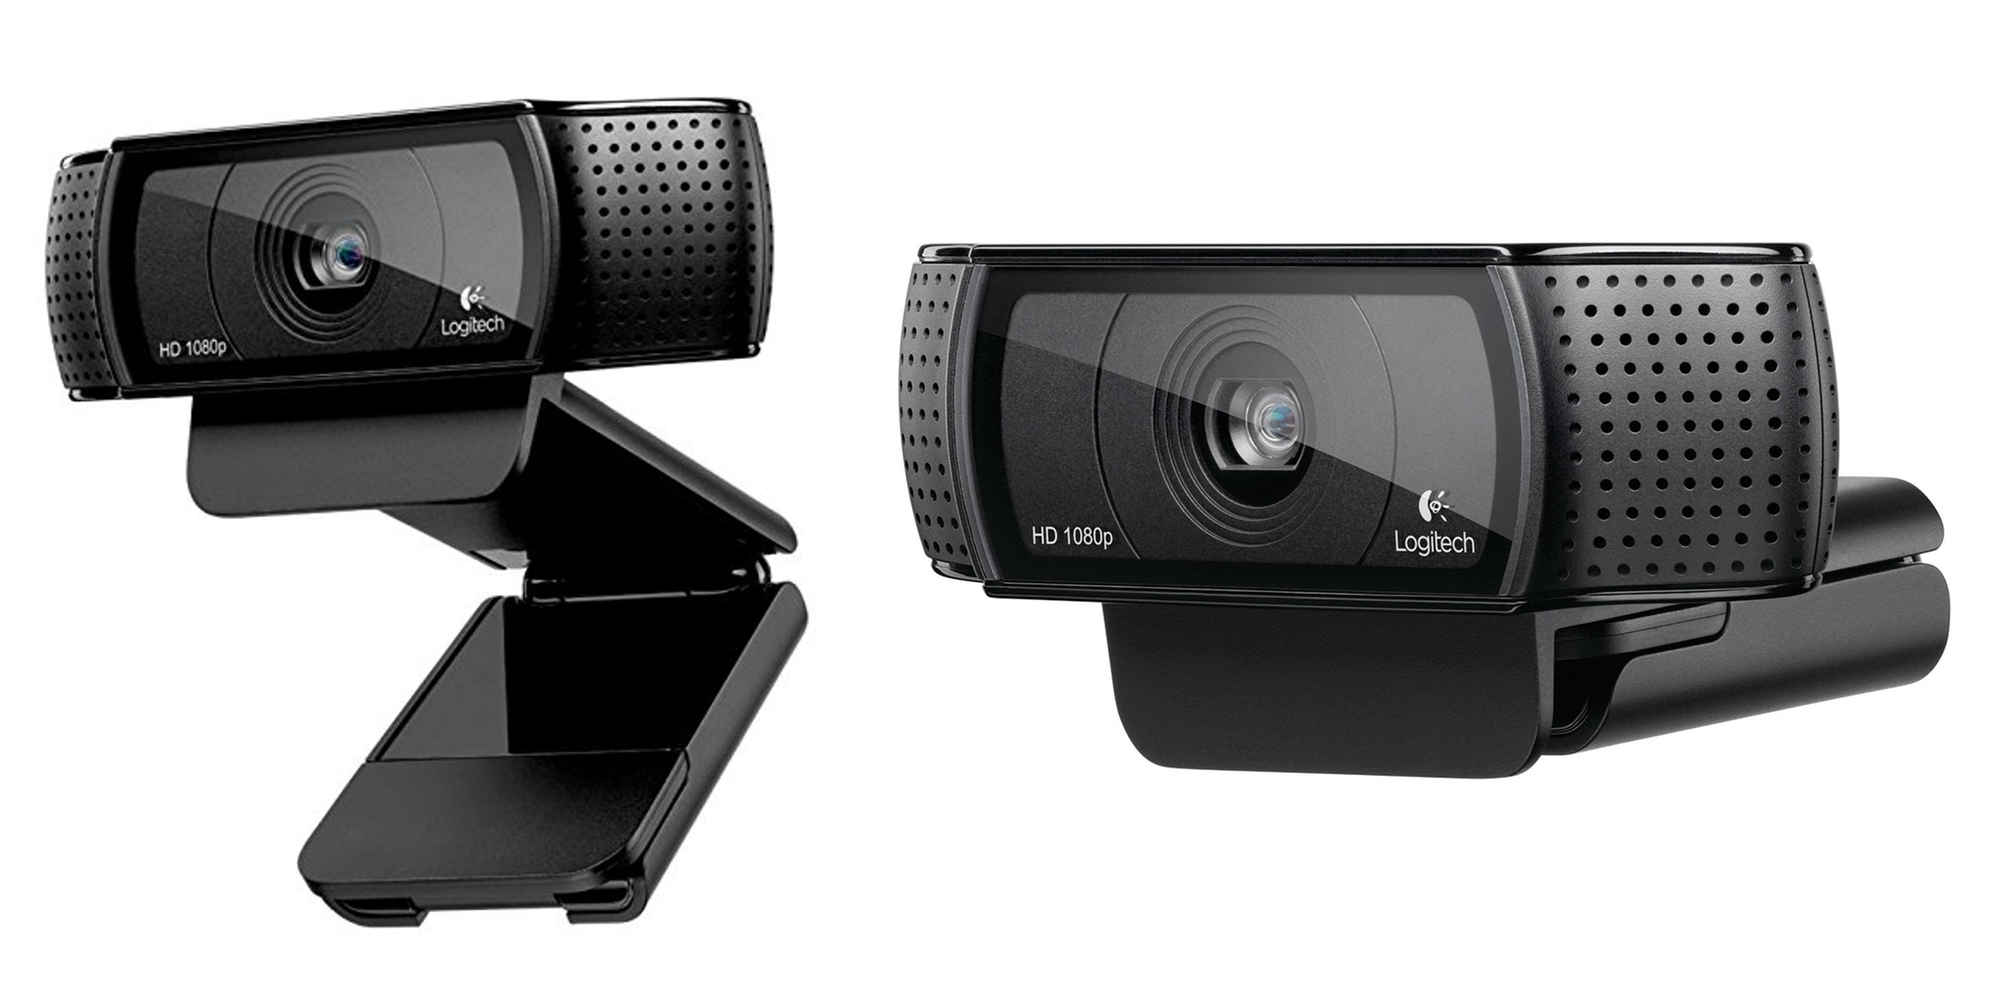 Logitech S C920 Pro Webcam Drops To 40 For Black Friday In July